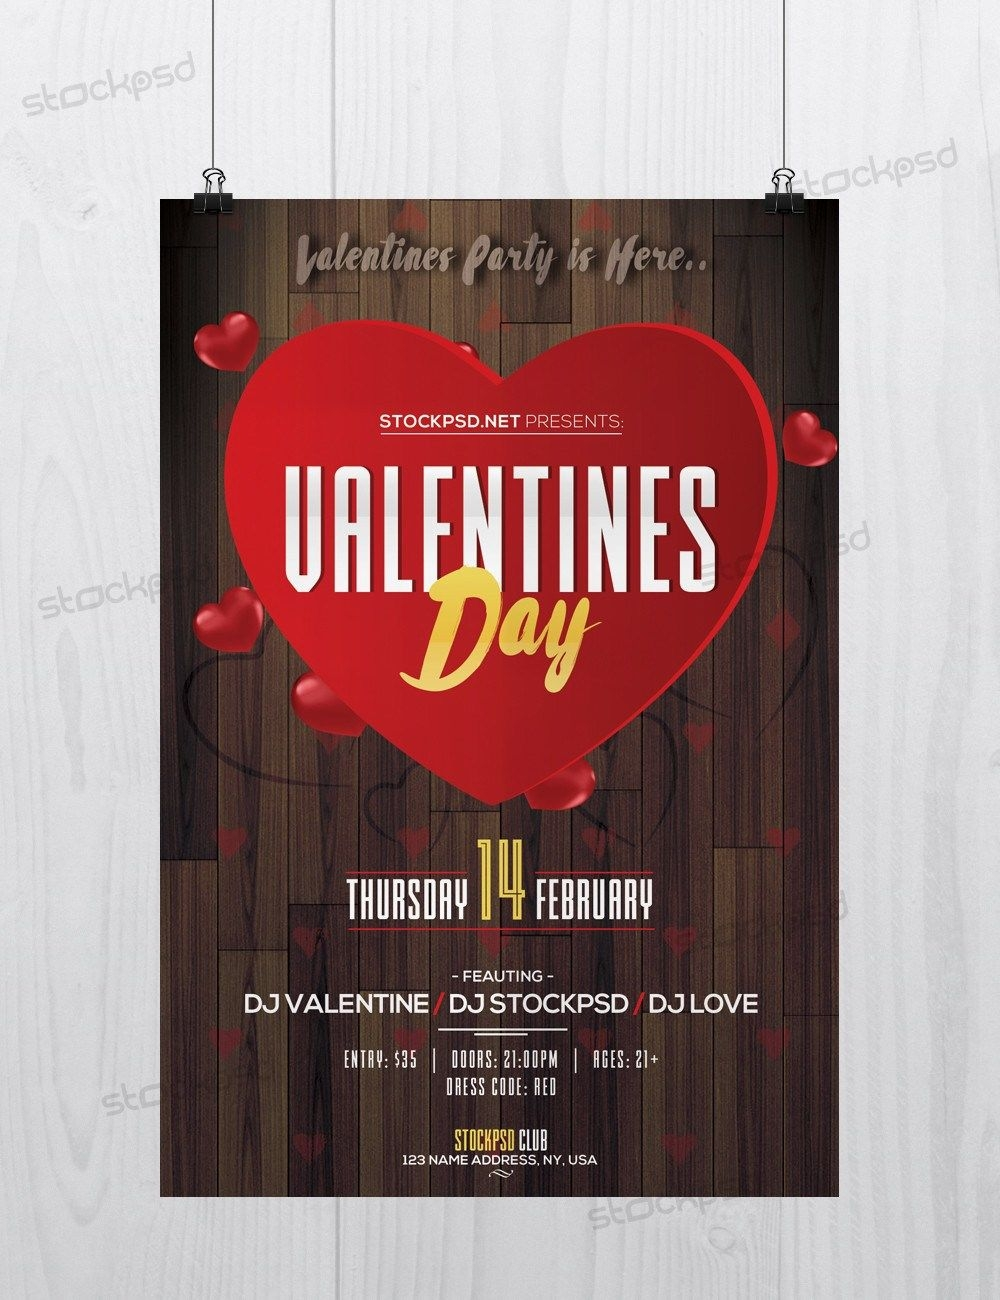 Valentines Day Event Download Free Psd Flyer Template Free Psd